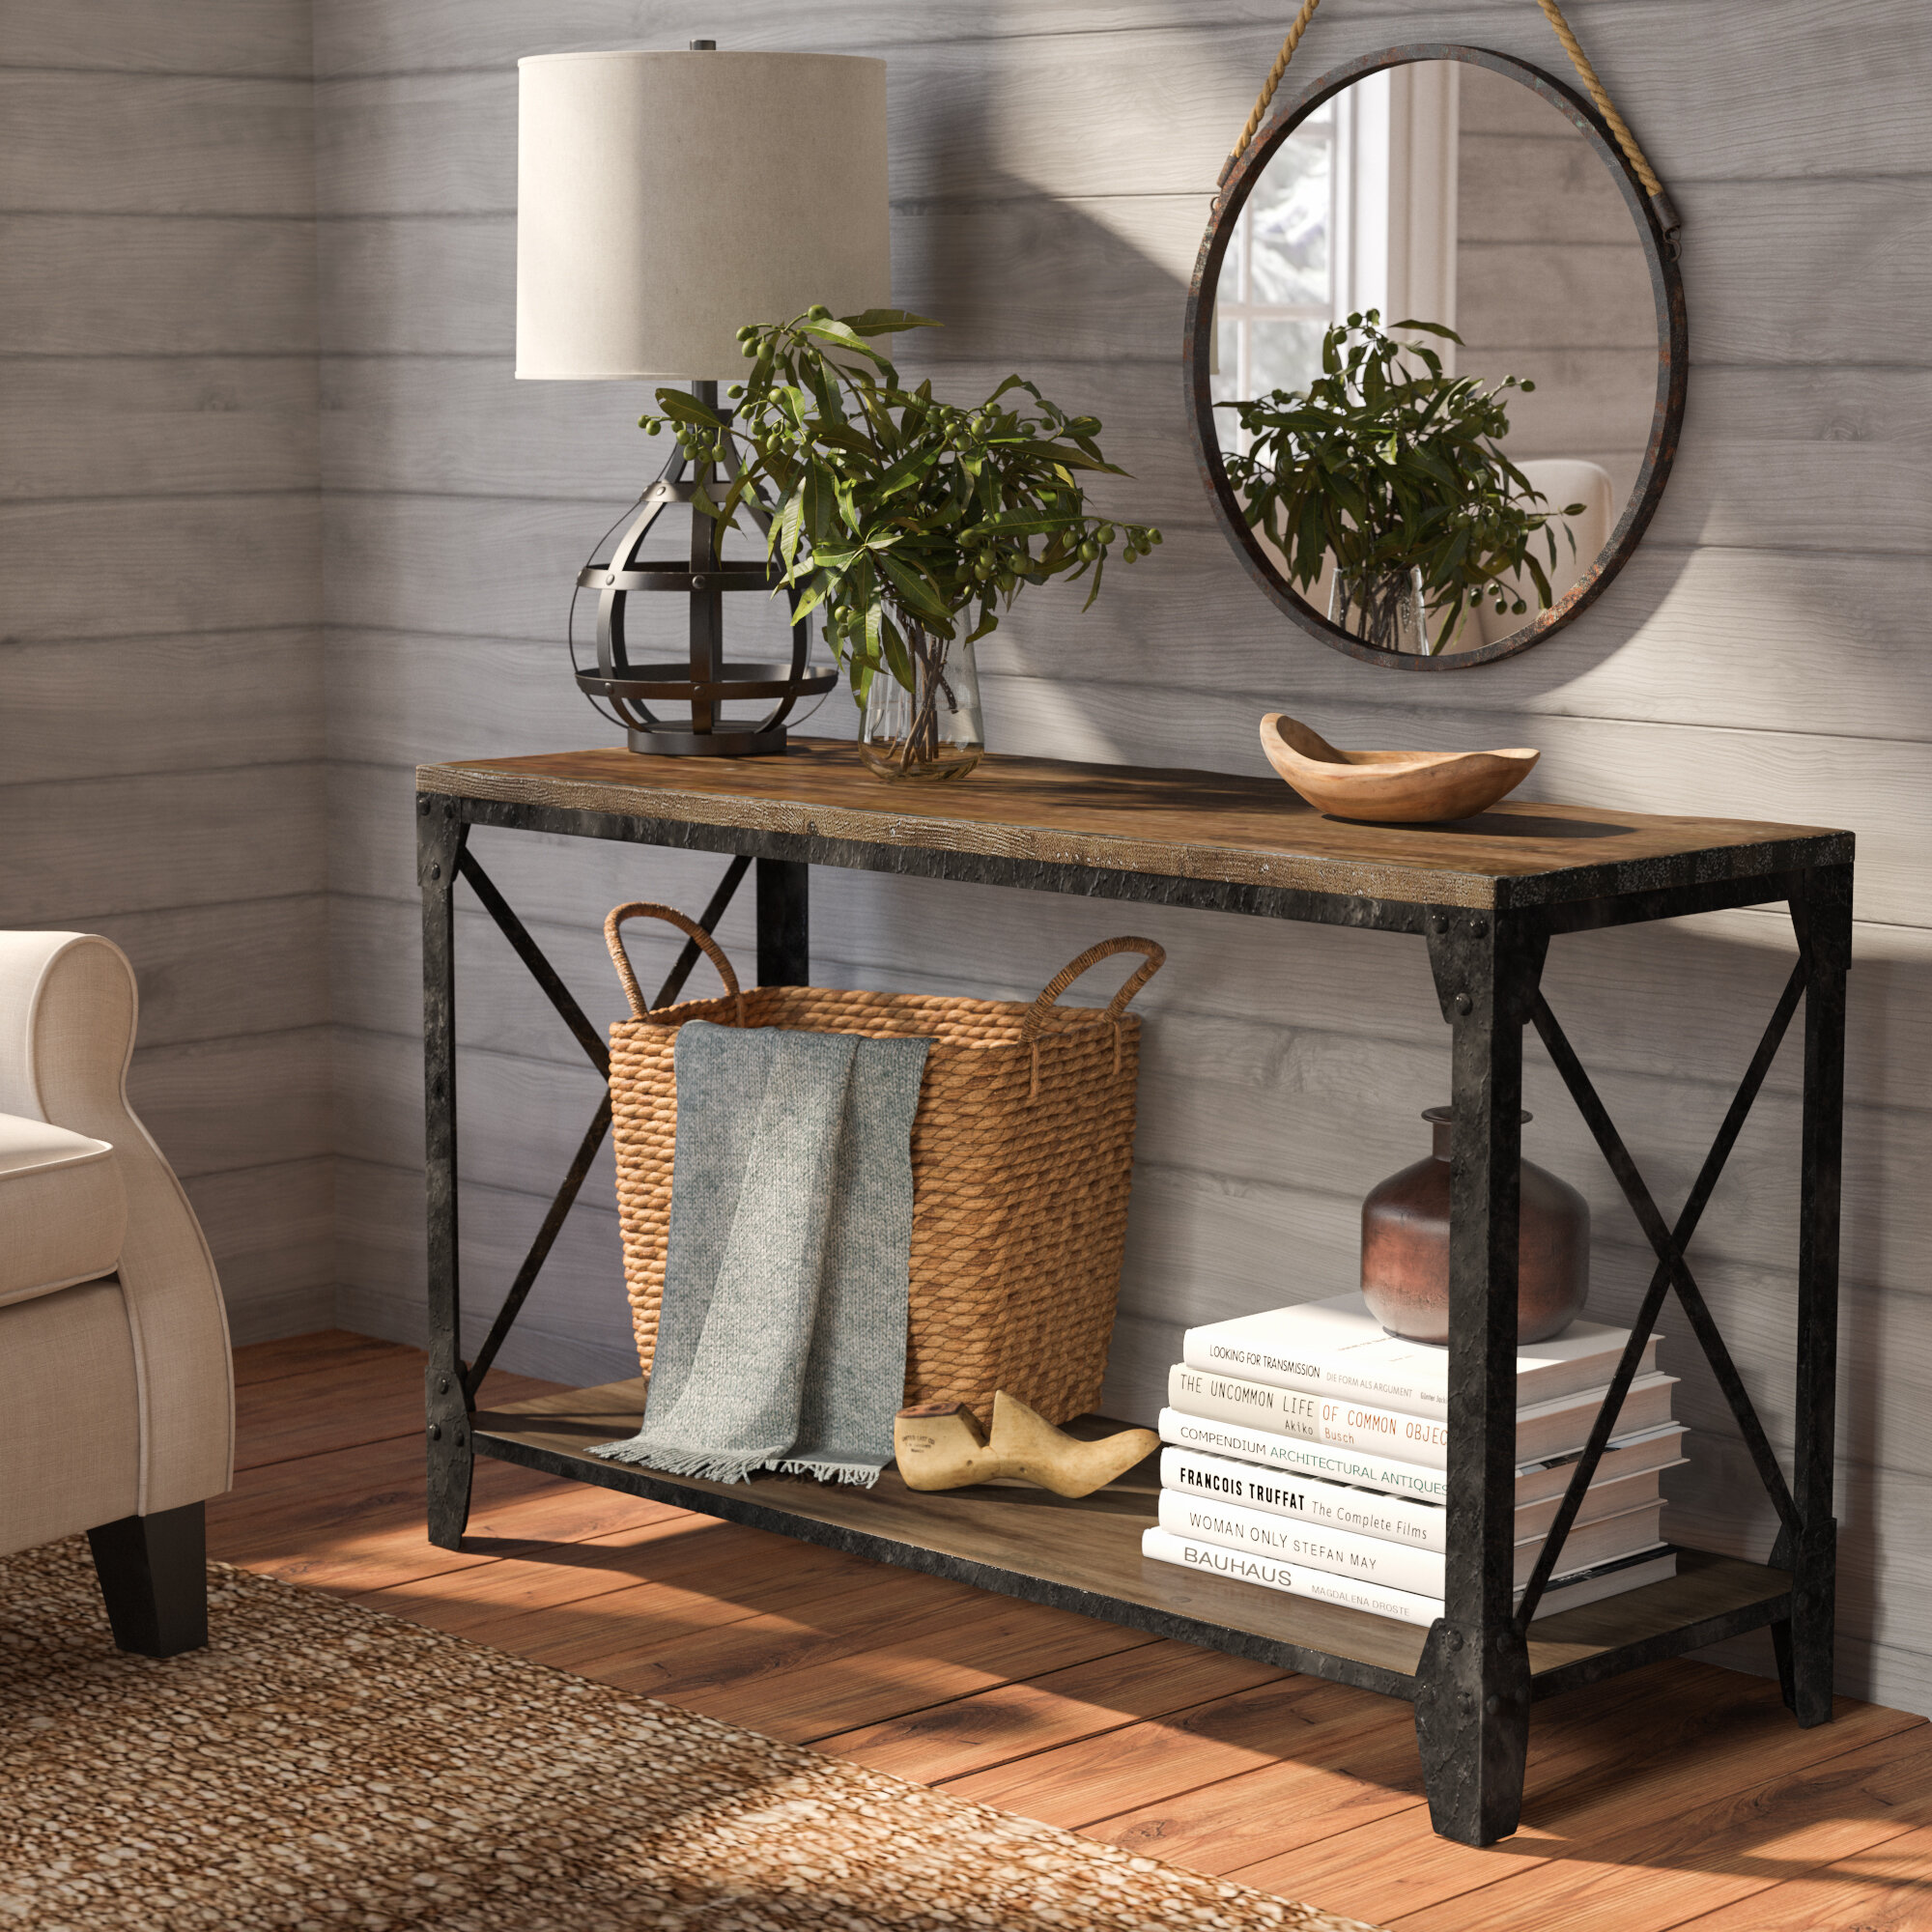 Awe Inspiring Beckfield Tv Stand For Tvs Up To 55 Download Free Architecture Designs Scobabritishbridgeorg